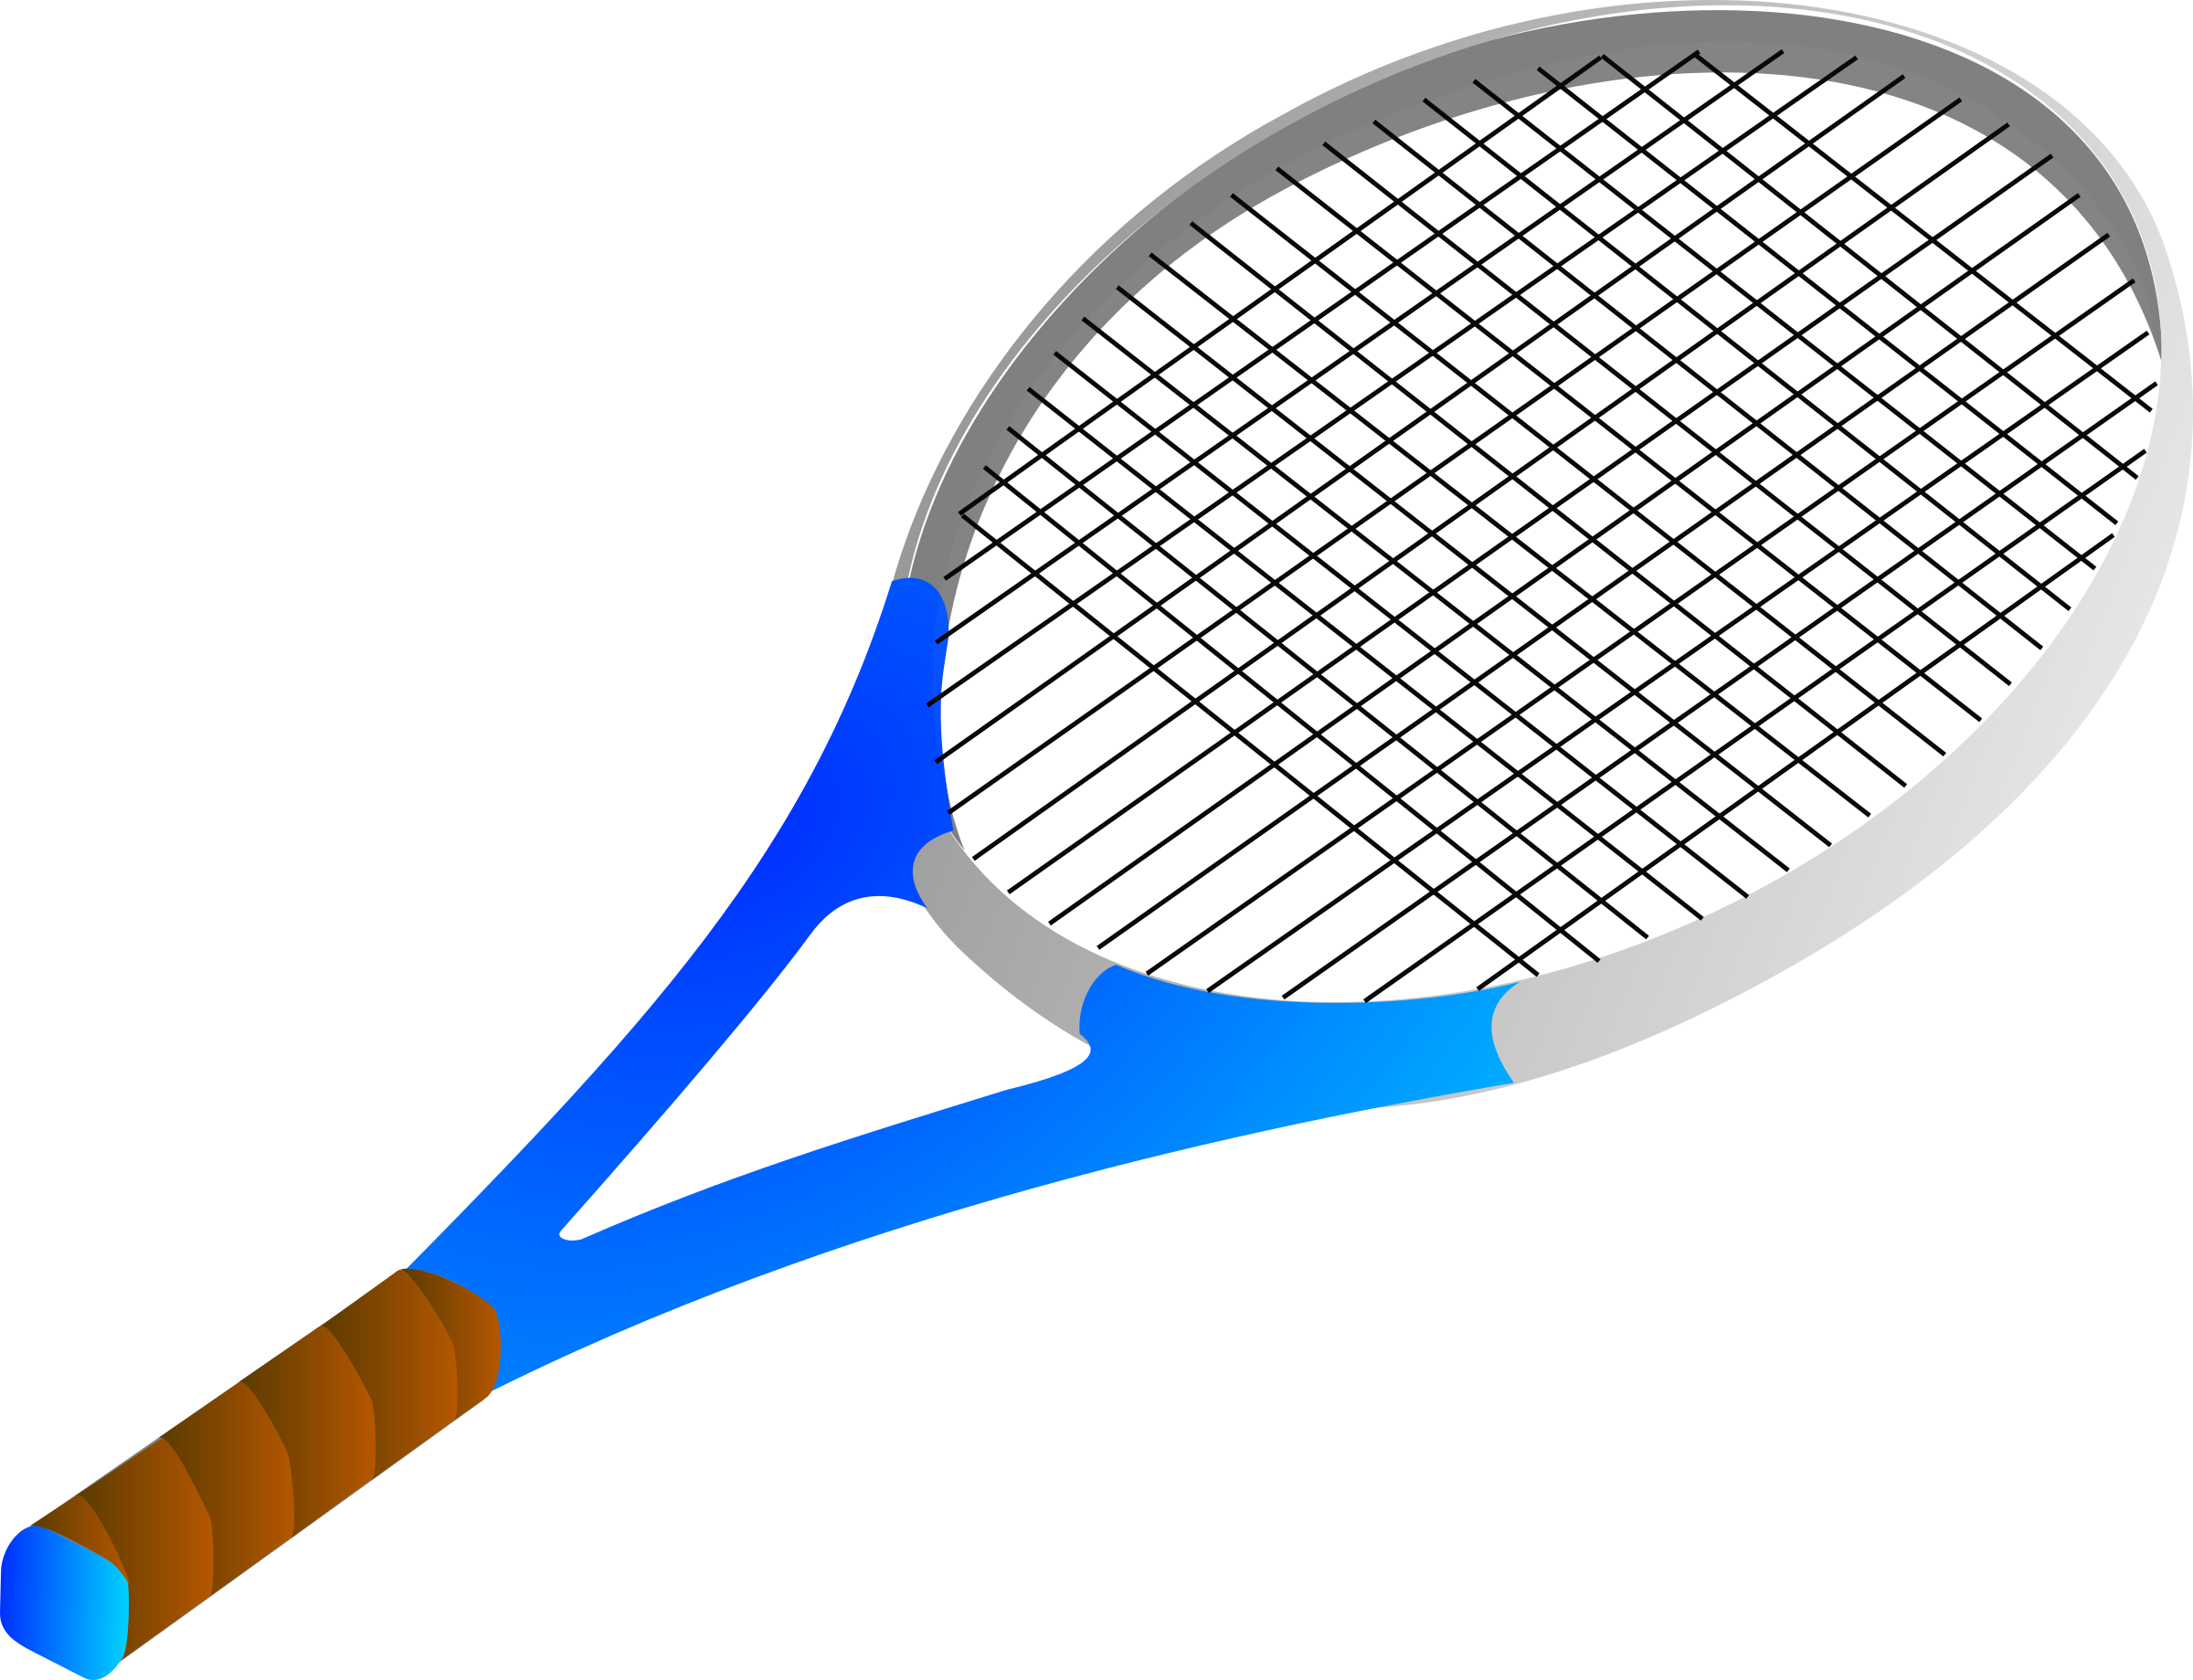 2400x1839 Tennis Racket Icons Png